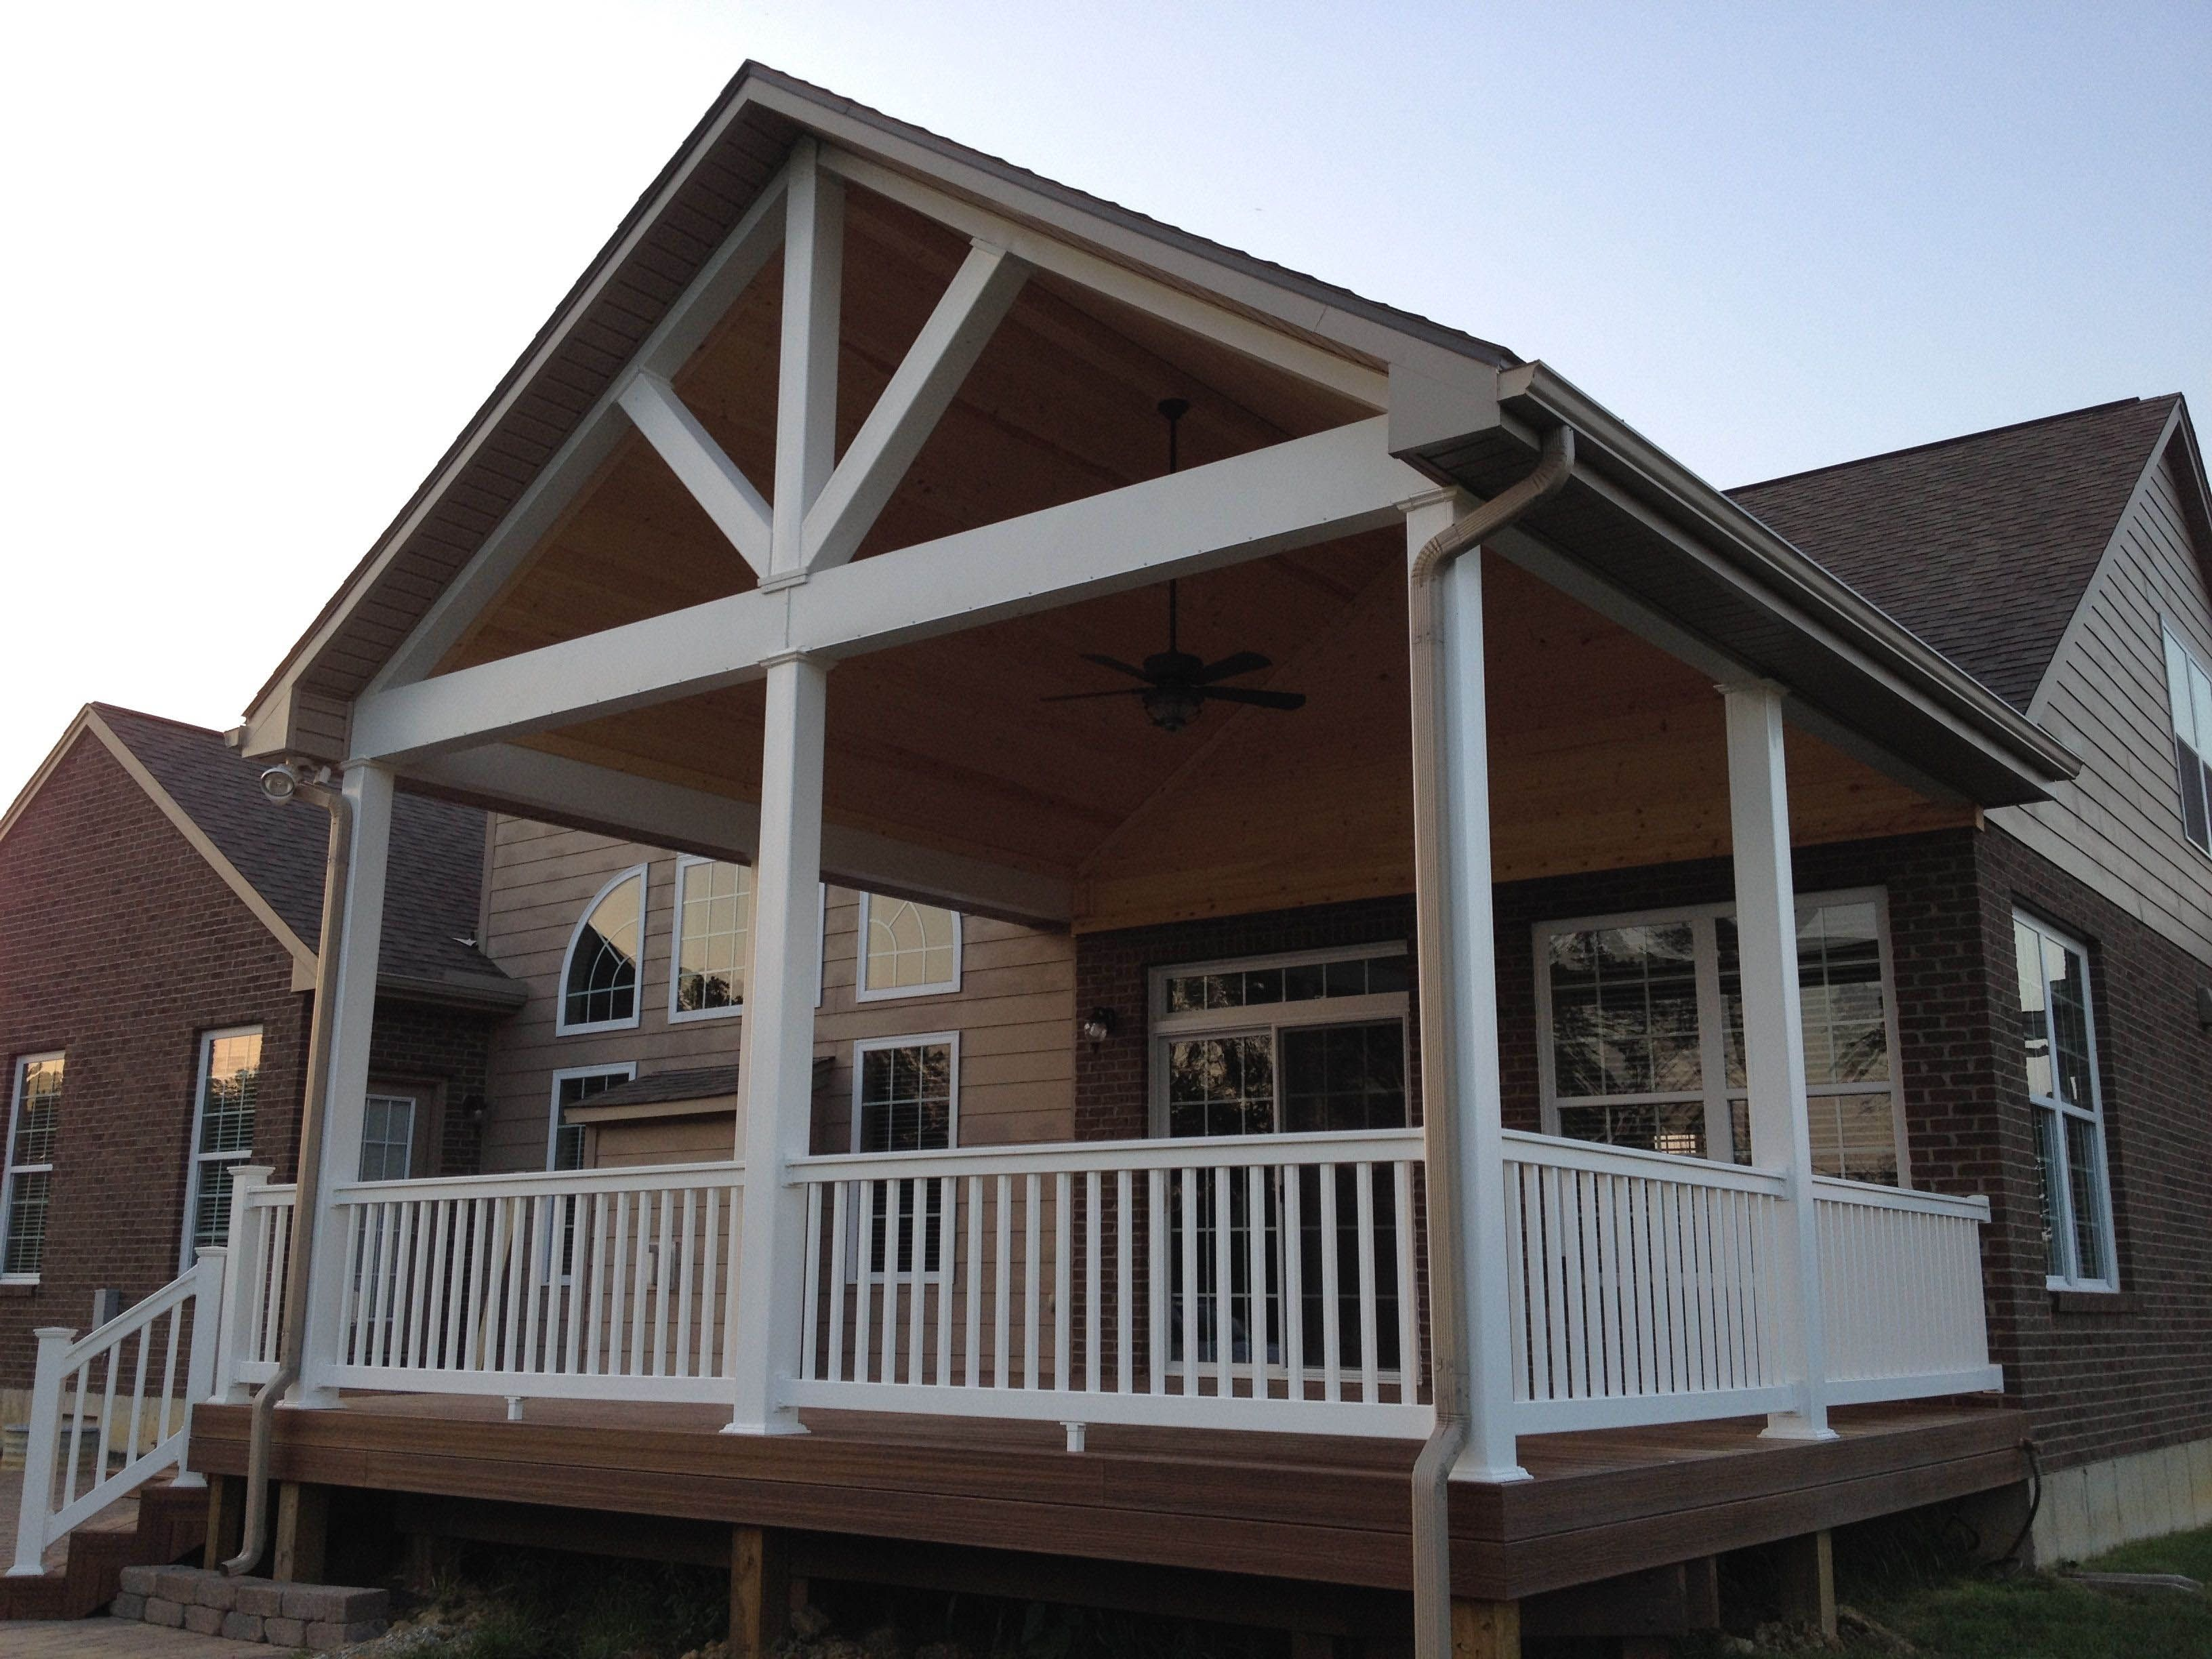 Porch Roof Designs And Styles Porch Roof House With Porch Porch Roof Design